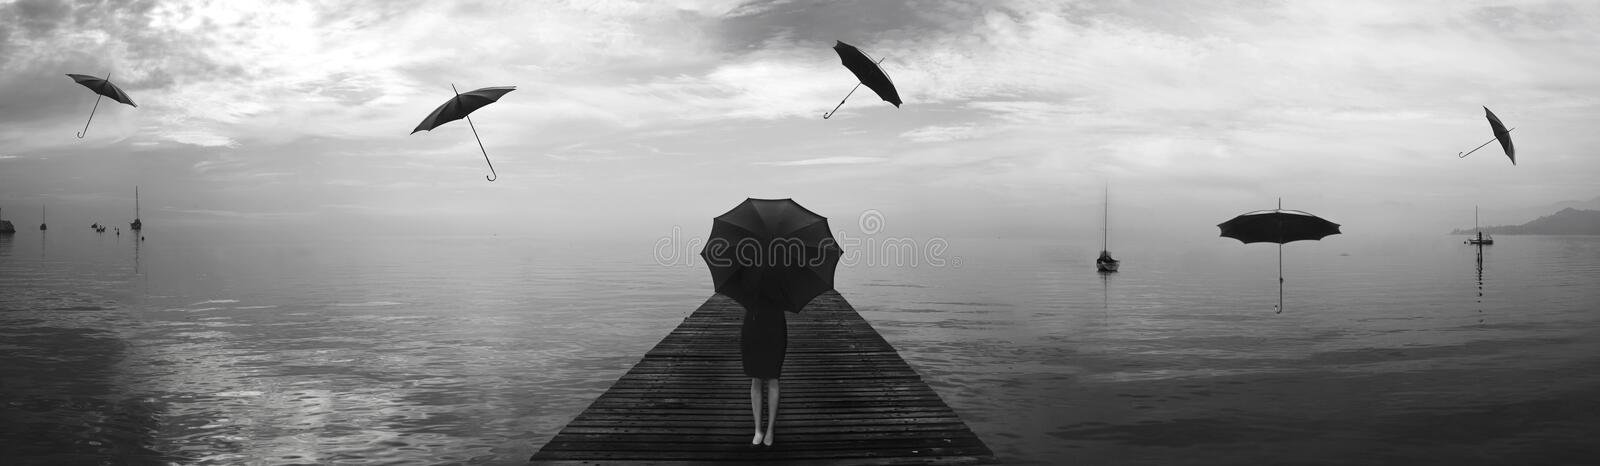 Elegant woman repairing from the rain of blacks umbrellas royalty free stock photo